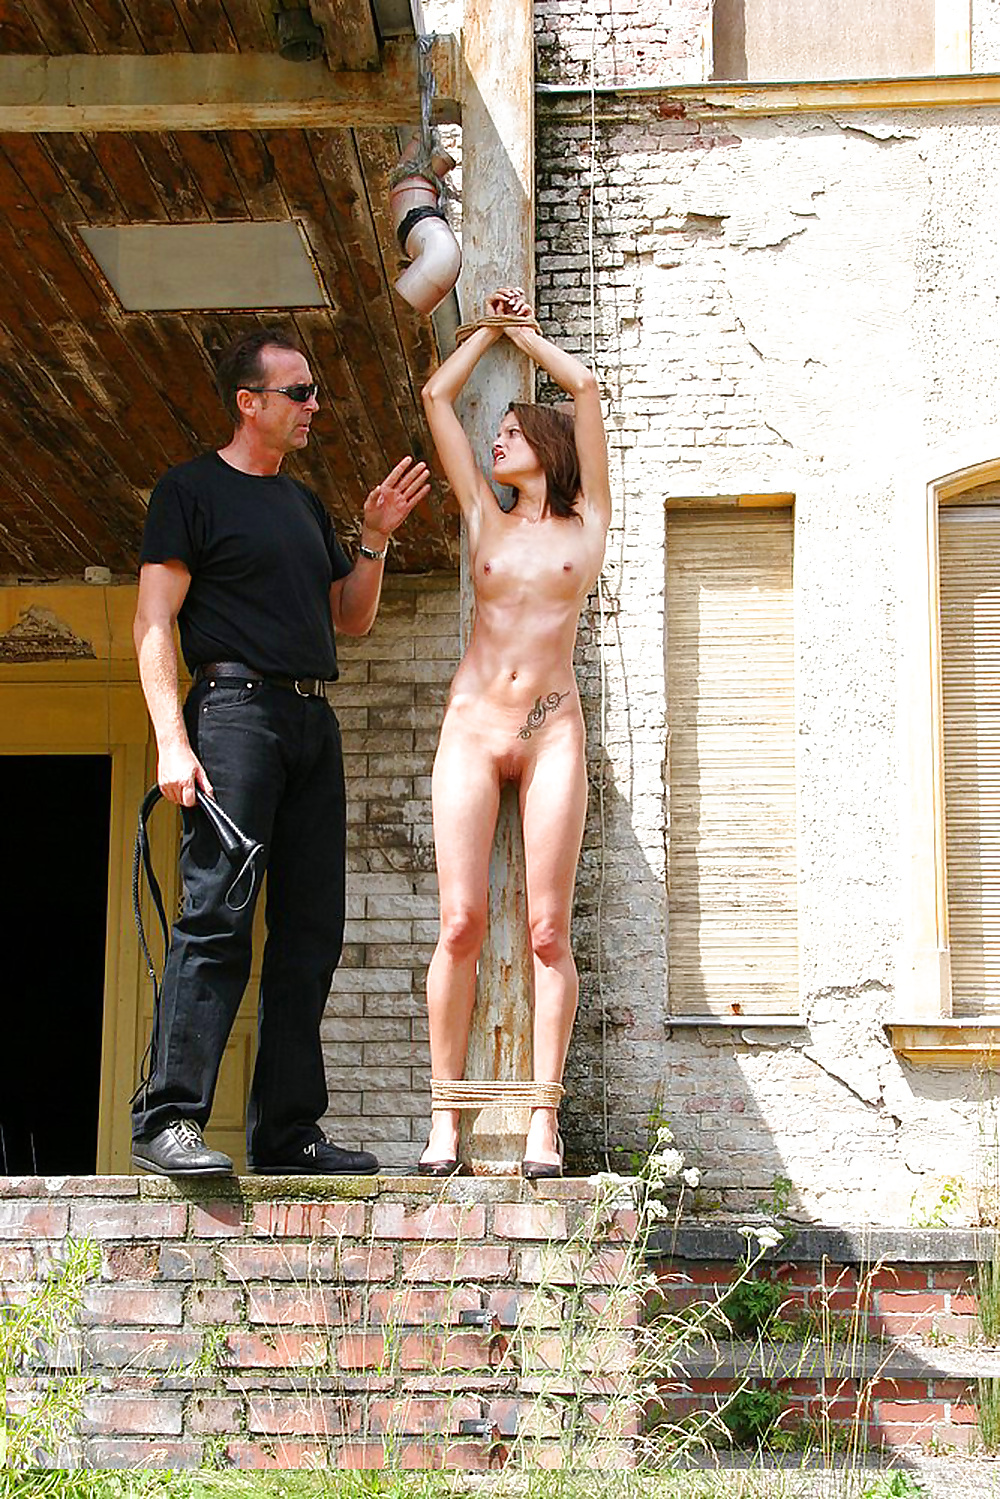 Forced Public Nudity As Punishment